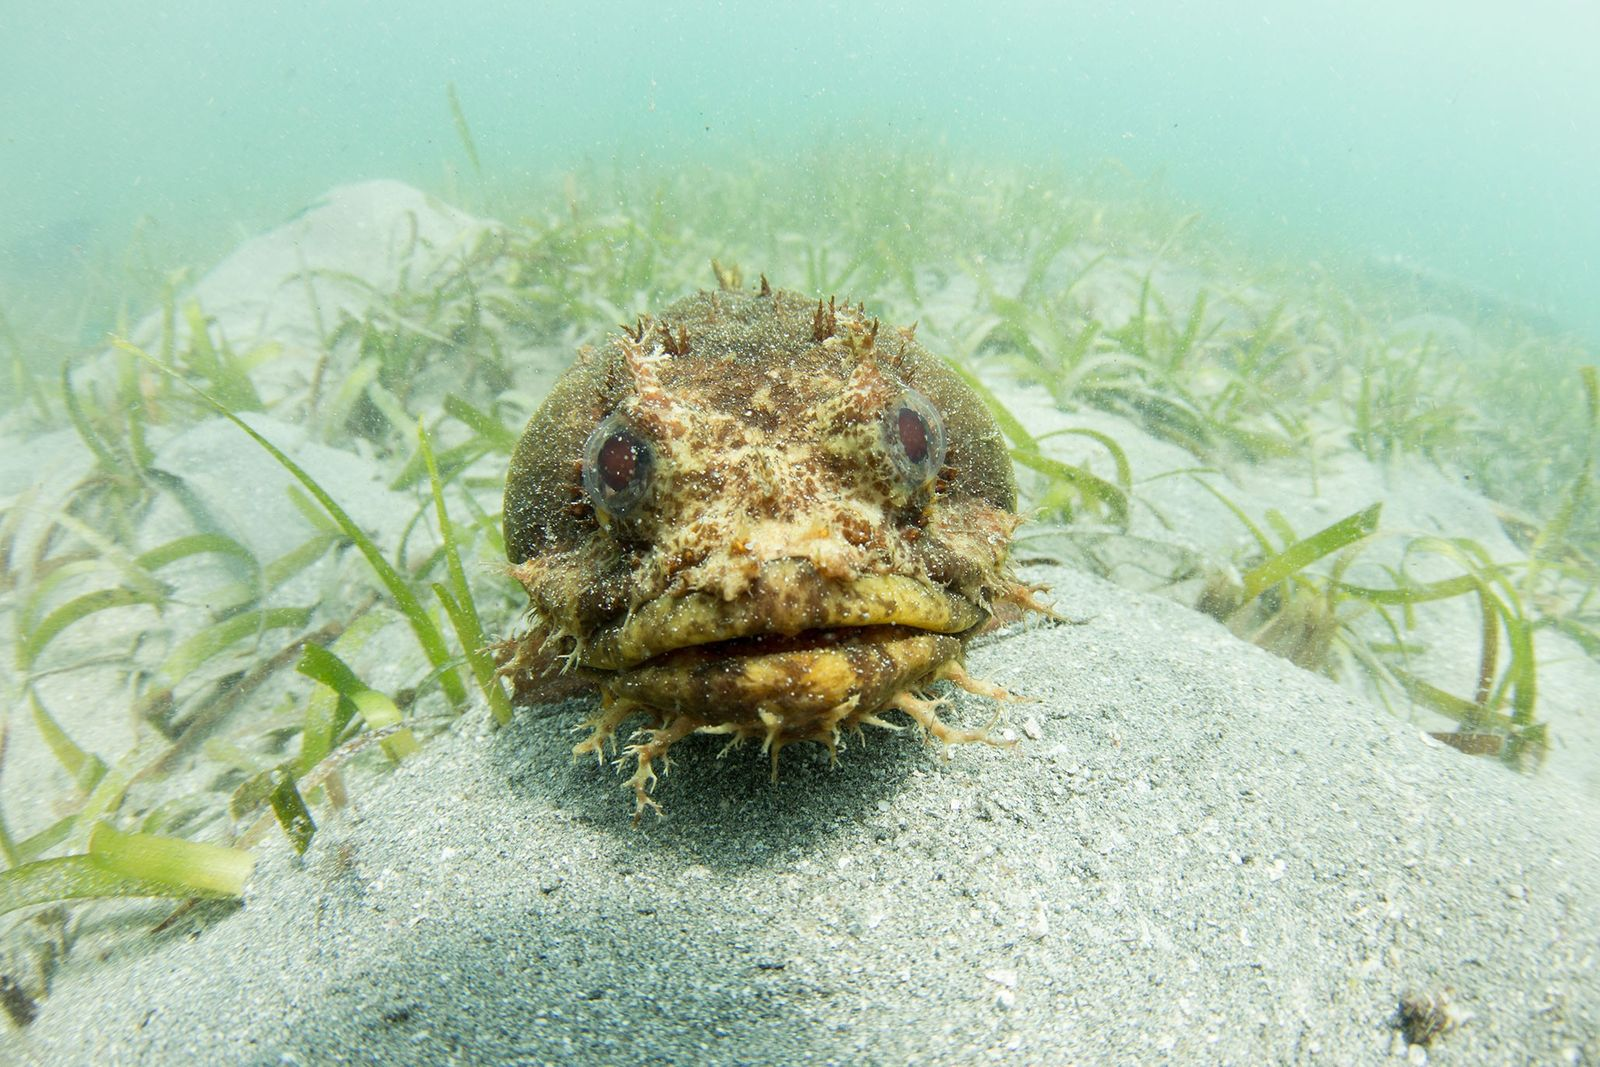 A Bocon toadfish seems to pose for the camera.